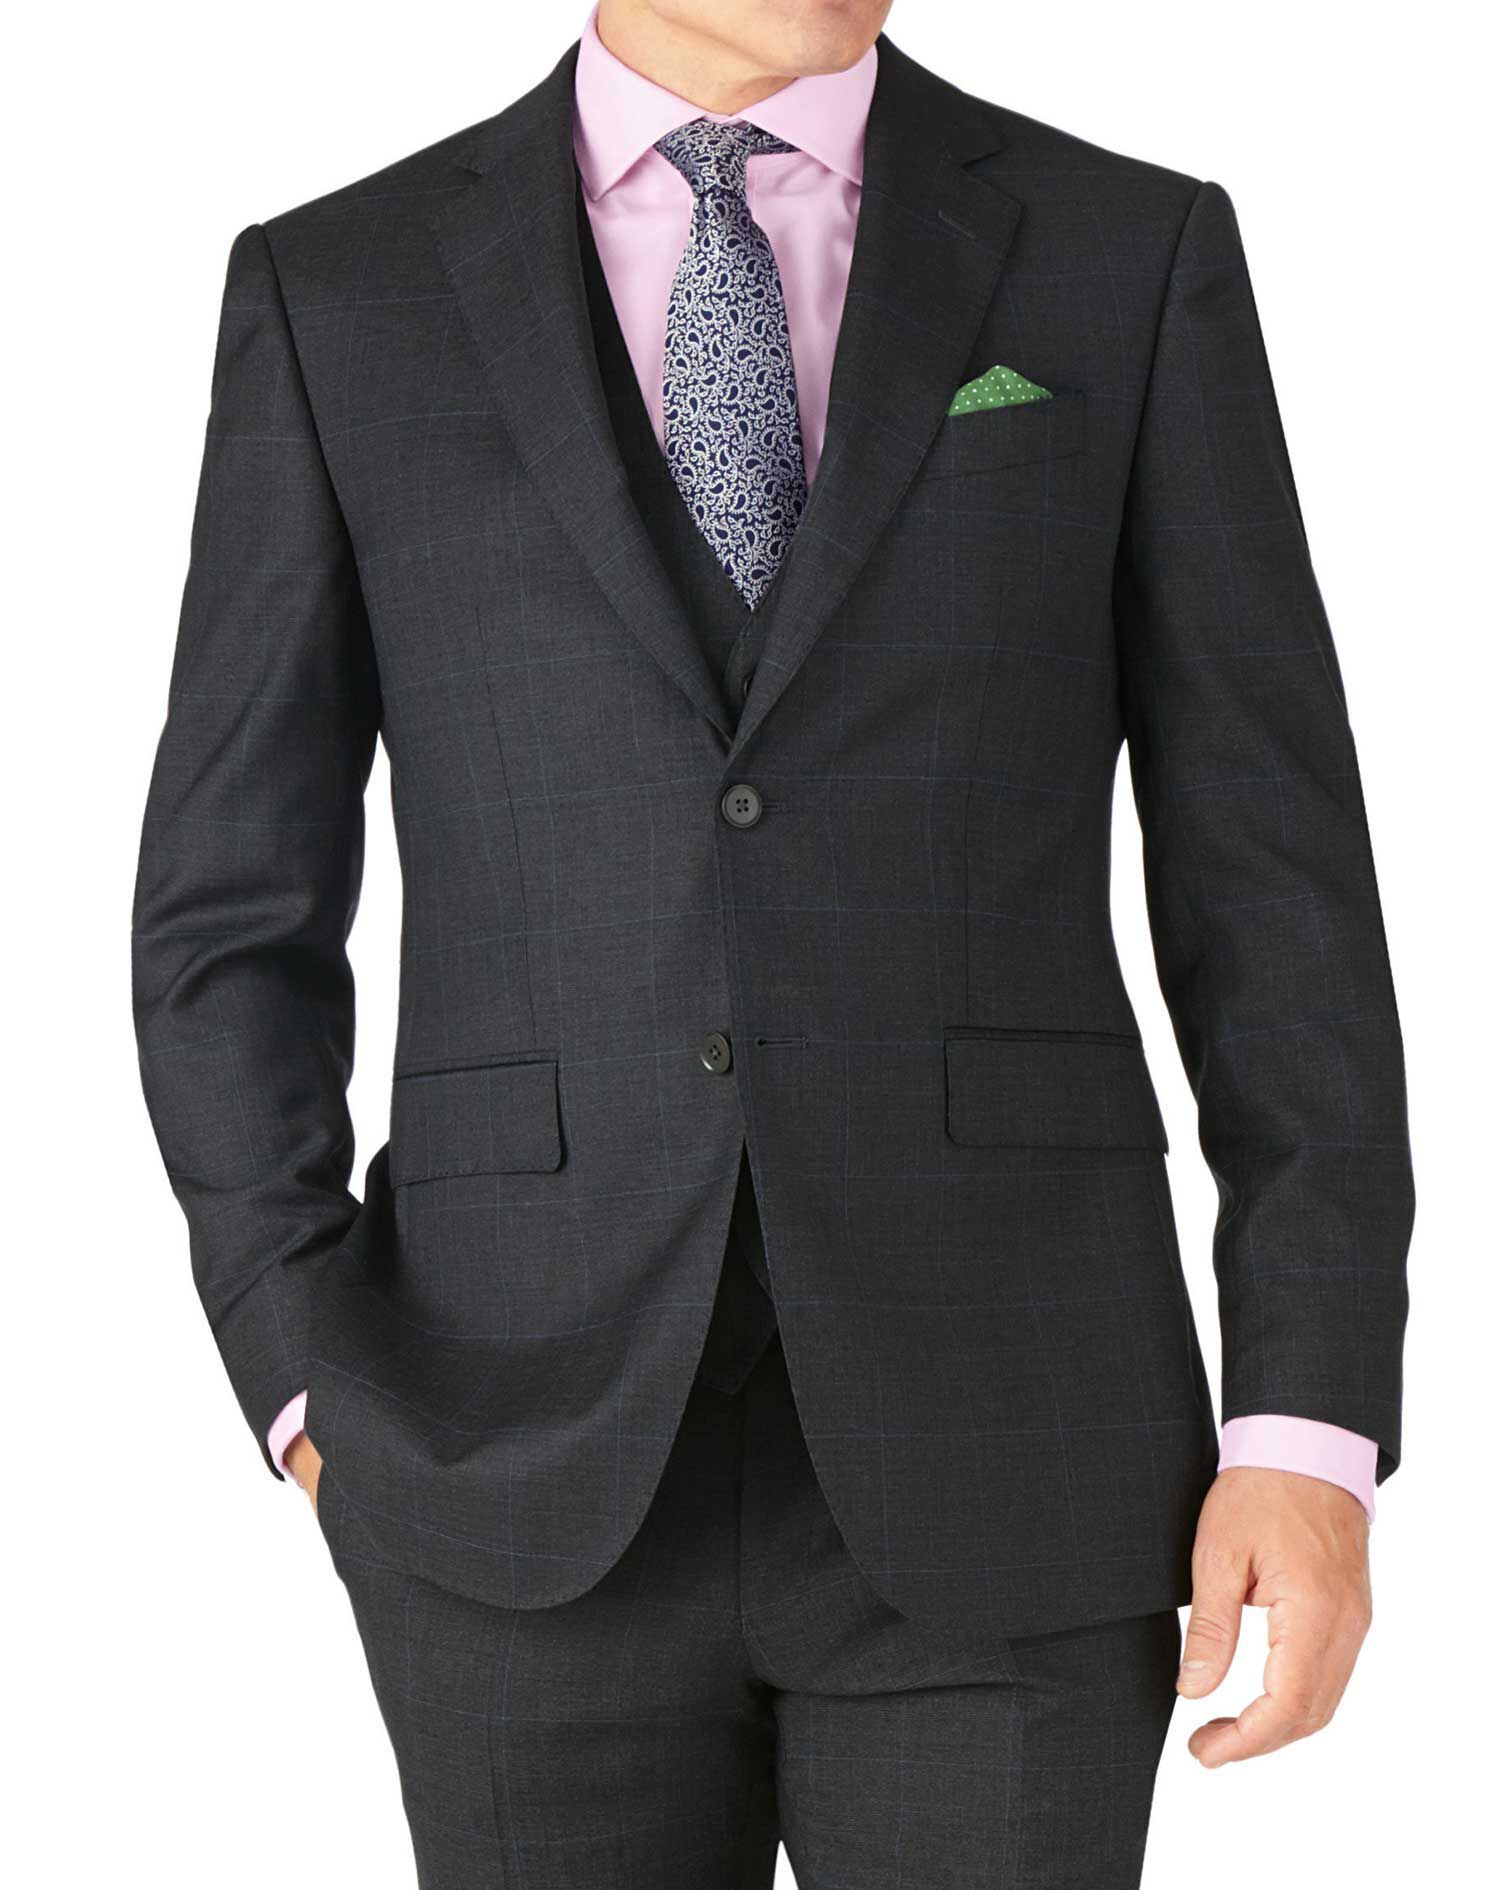 Charcoal Slim Fit Sharkskin Travel Suit Wool Jacket Size 36 Short by Charles Tyrwhitt